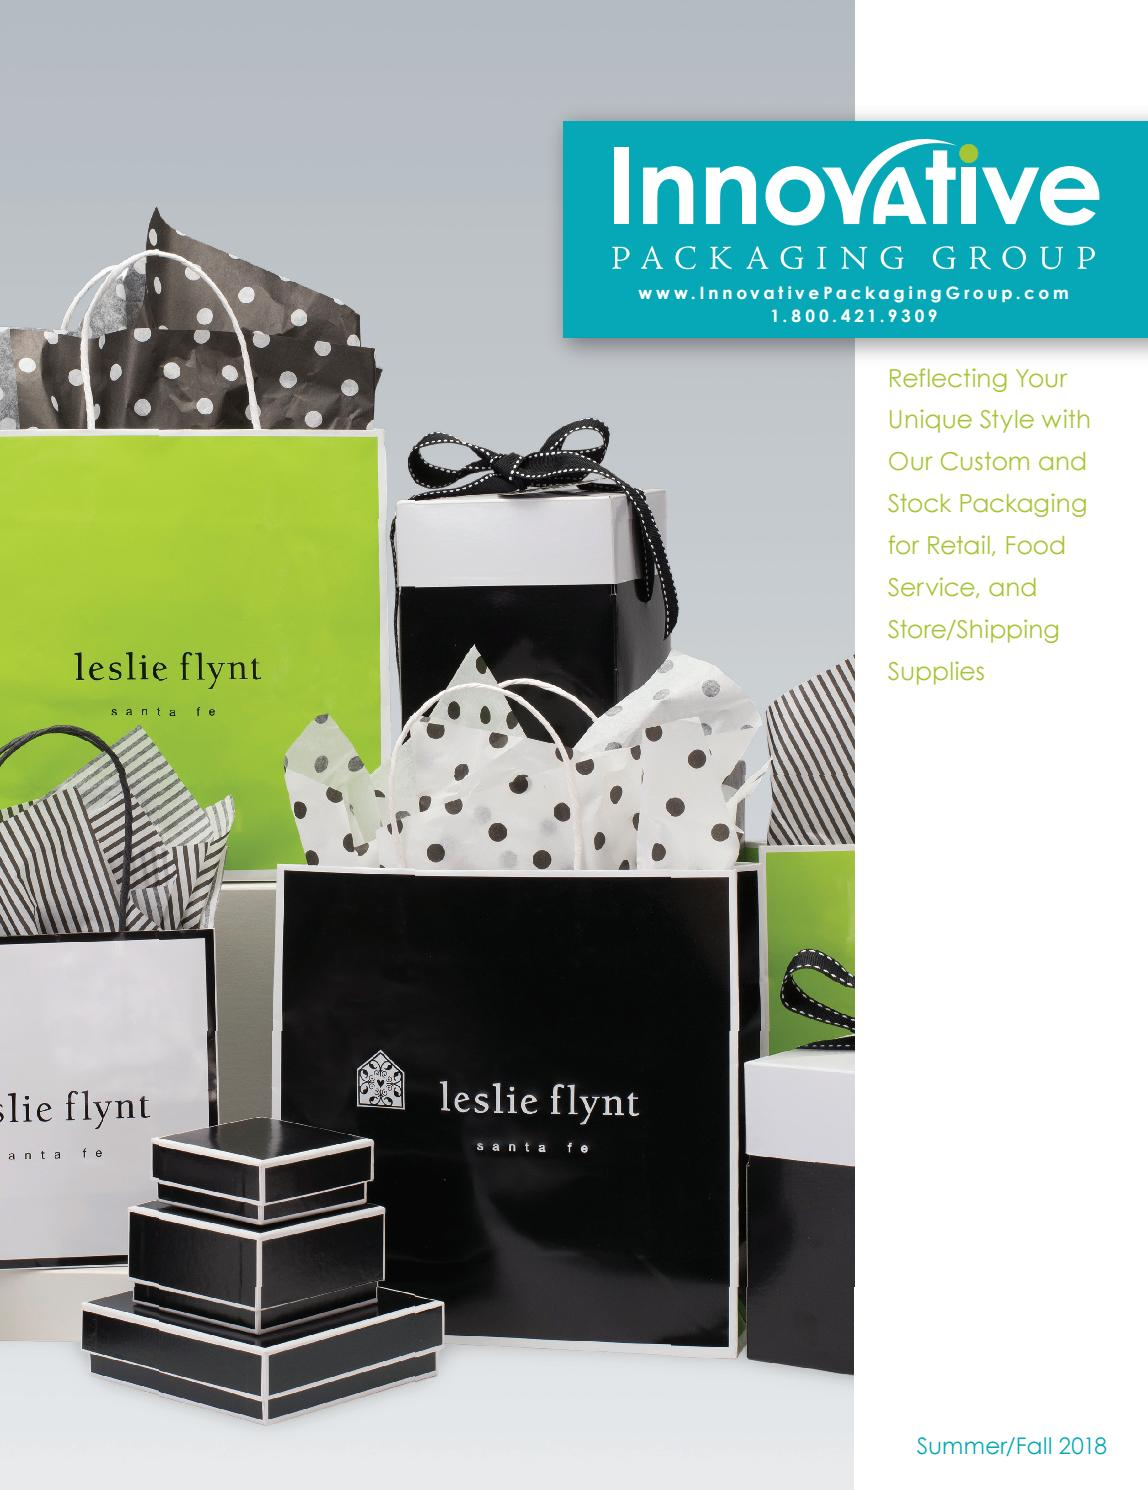 100 Quantity $2.05 each Promotional Product//Bulk // WITH YOUR CUSTOMIZED BRANDING Single Snowflake Holiday Card